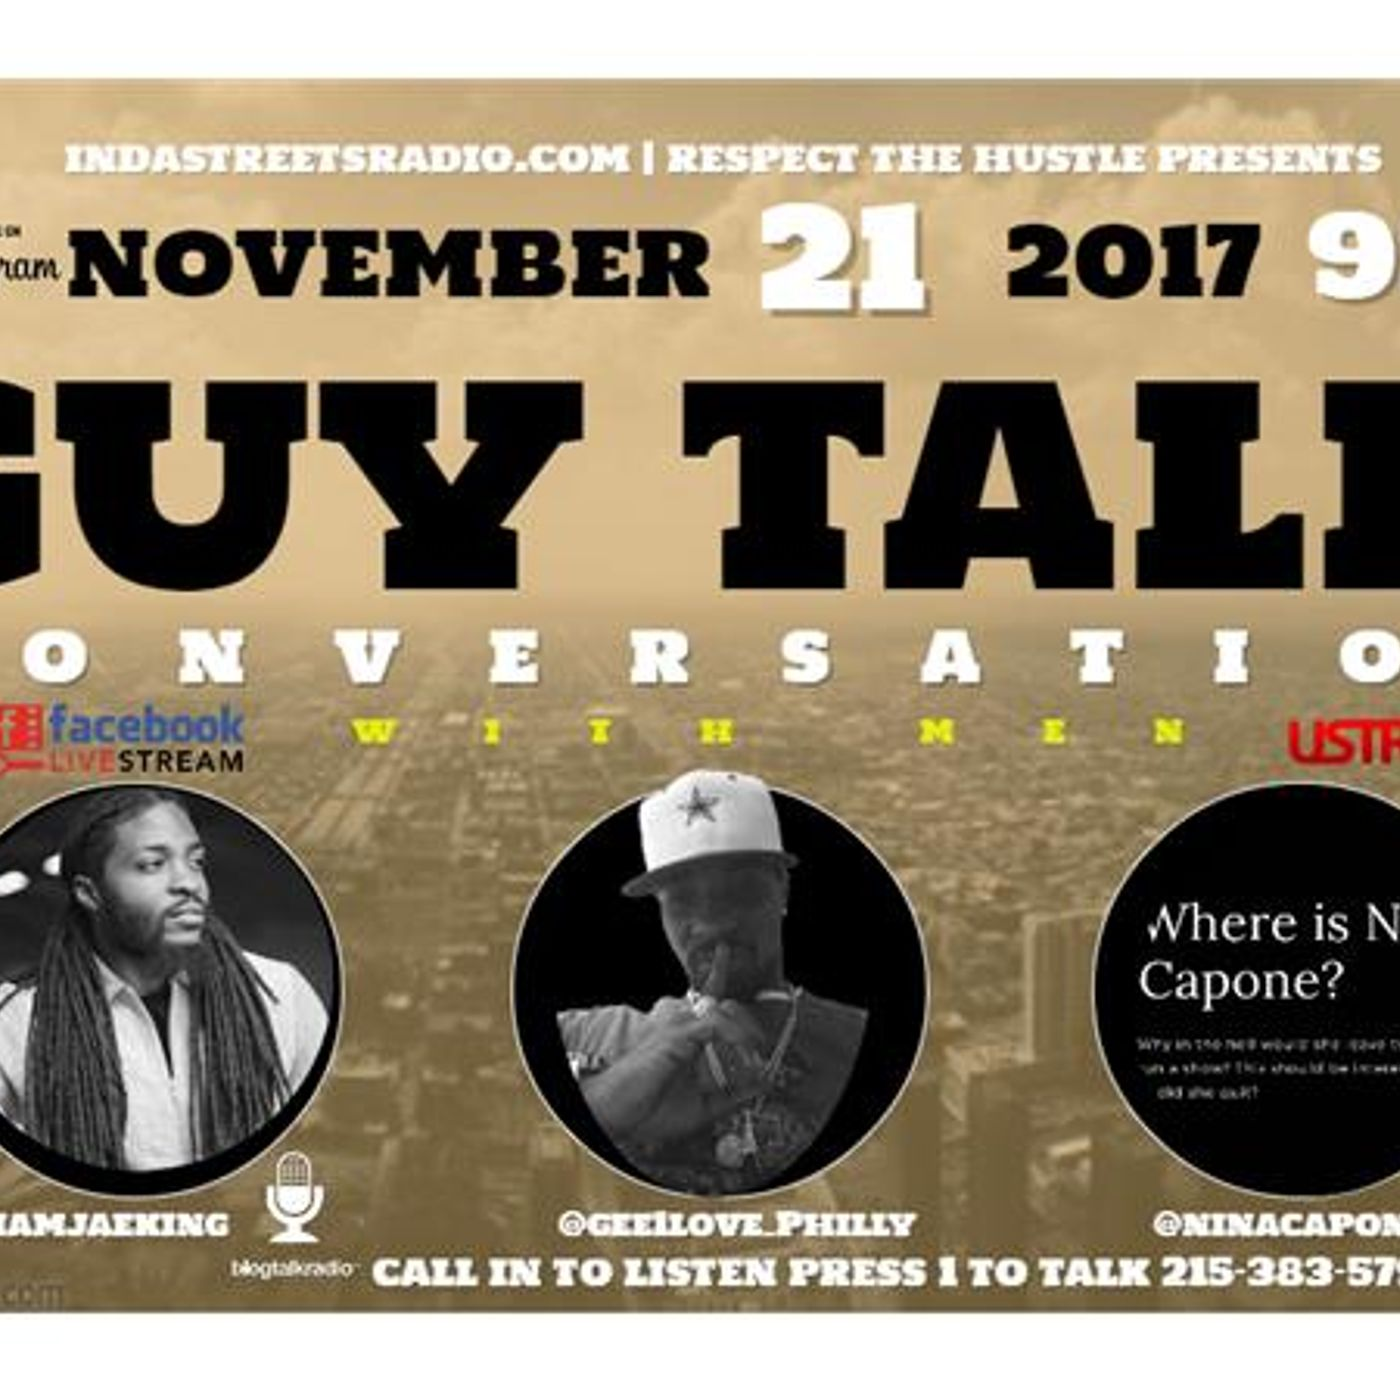 Respect The Hustle (Guy Talk-Conversation with Men) Tune in 215-383-5799